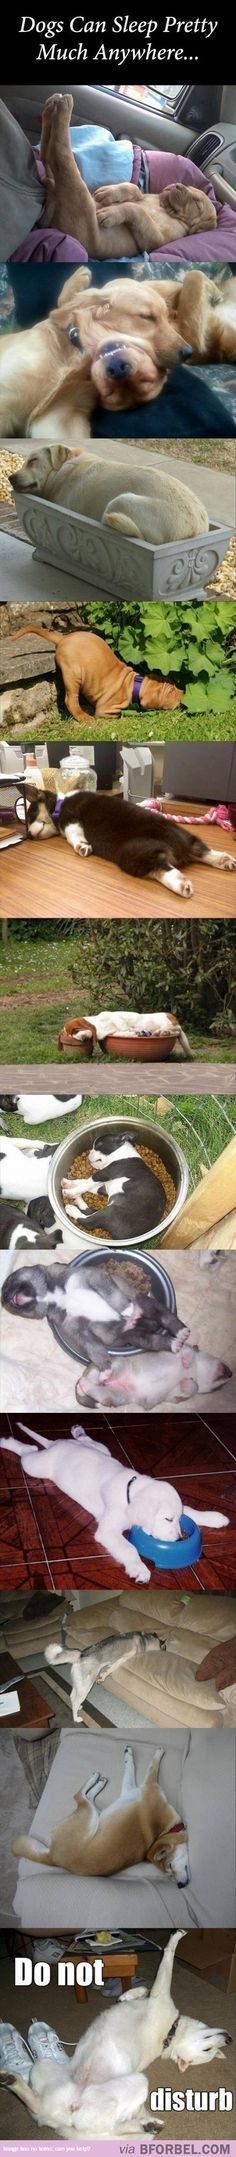 12 Dogs That Can Sleep Anywhere, In Any Position..